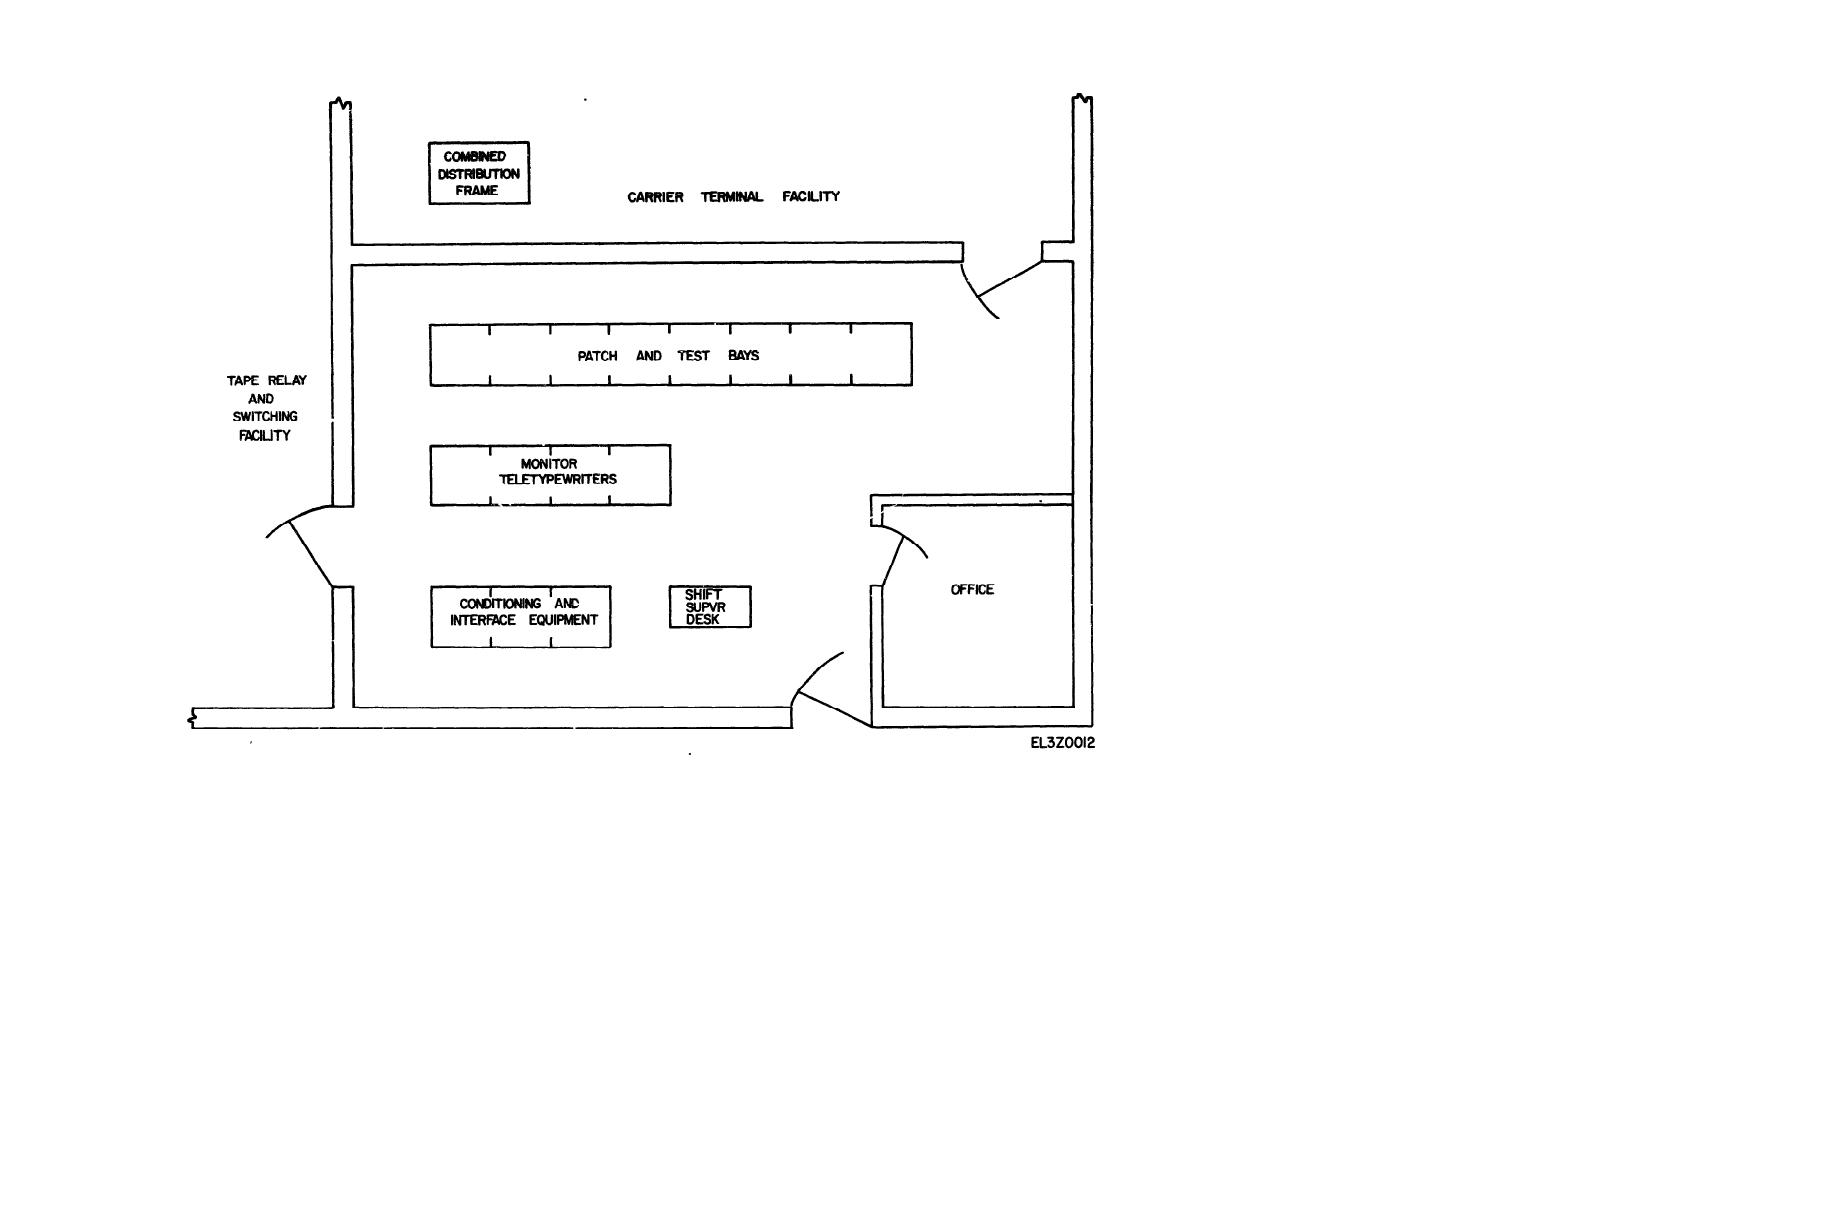 Figure 2-7. Technical Control Facility, typical floor plan.